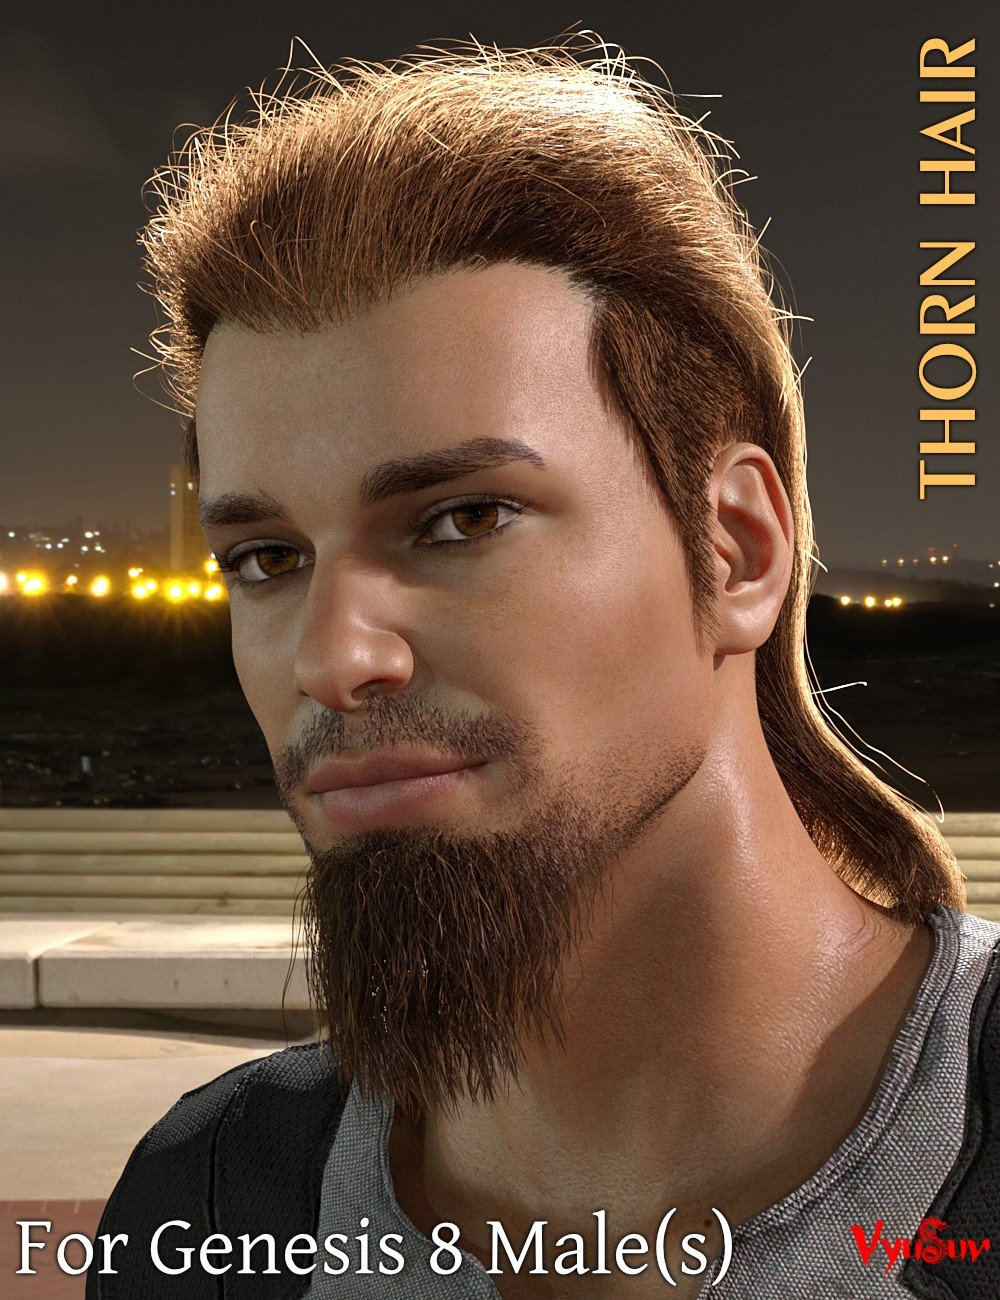 Thorn Hair and Beards for Genesis 8 Male(s)